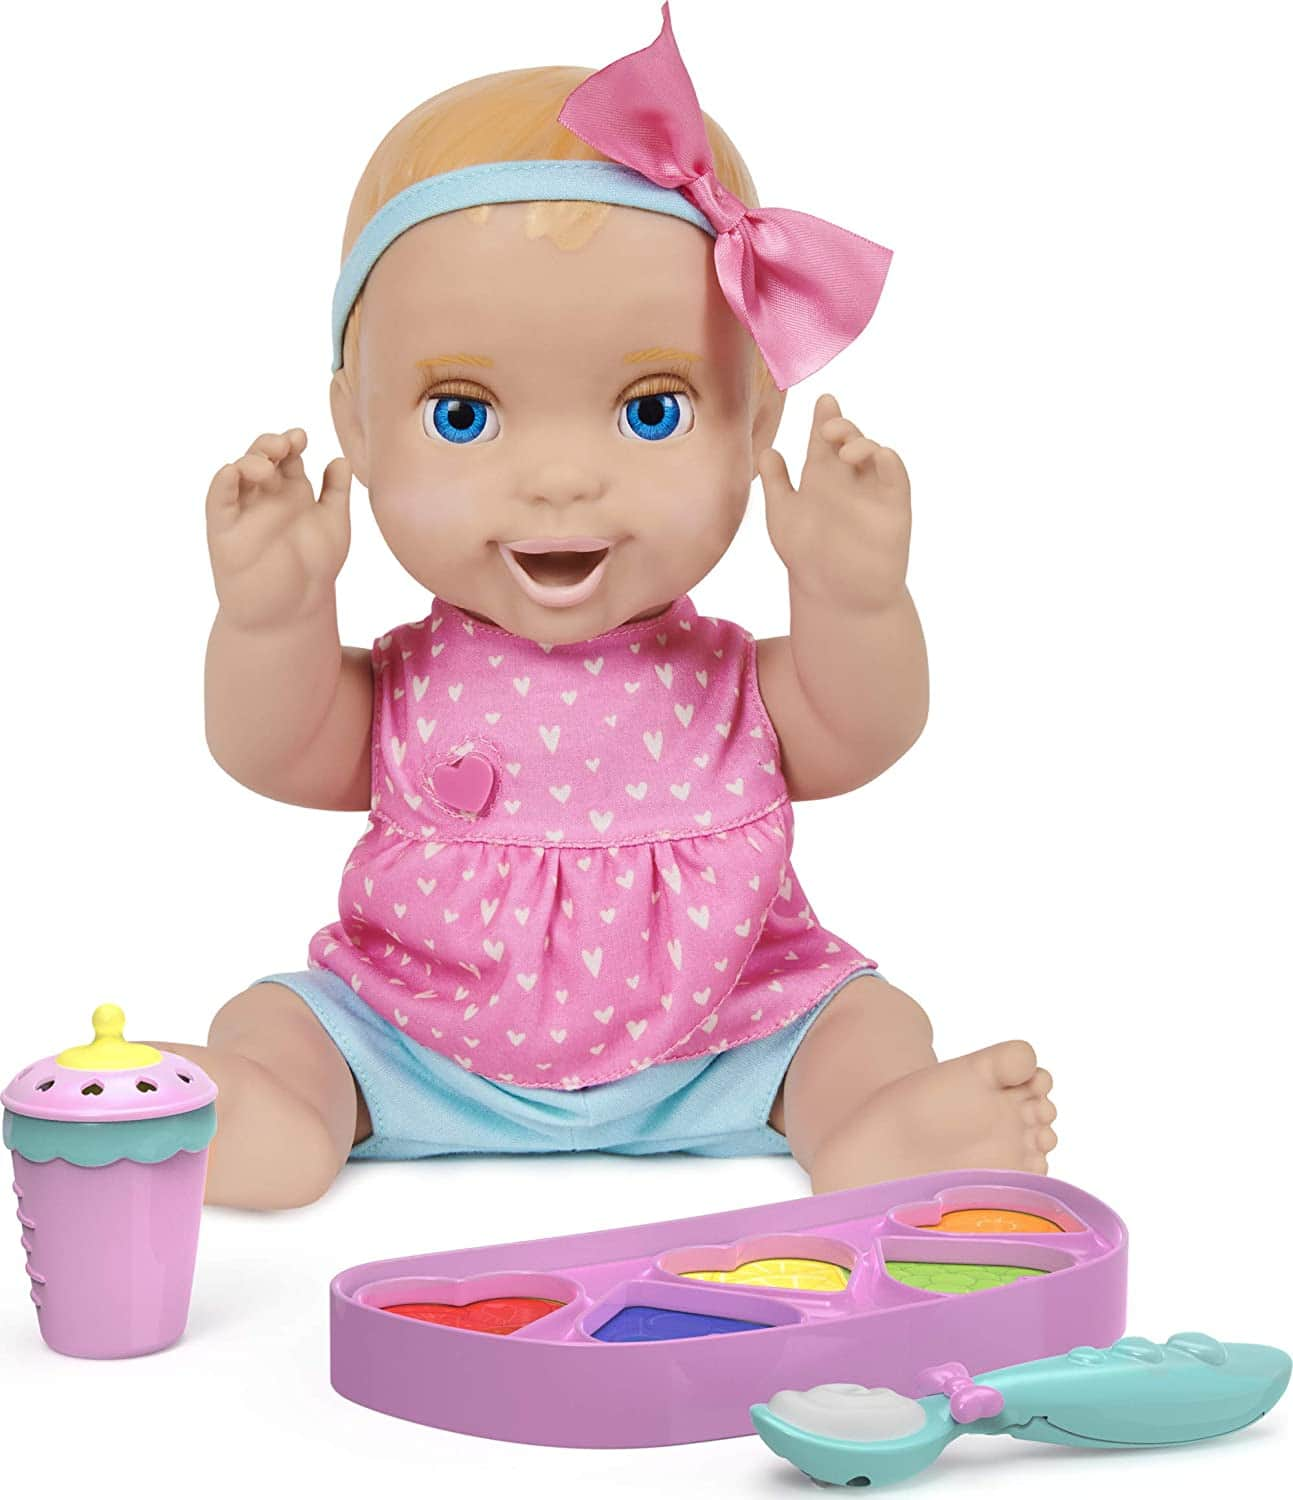 Mealtime Magic Mia Interactive Feeding Baby Doll w/ 70+ Sounds & Phrases $23.25 + Free Shipping w/ Amazon Prime or Orders $25+